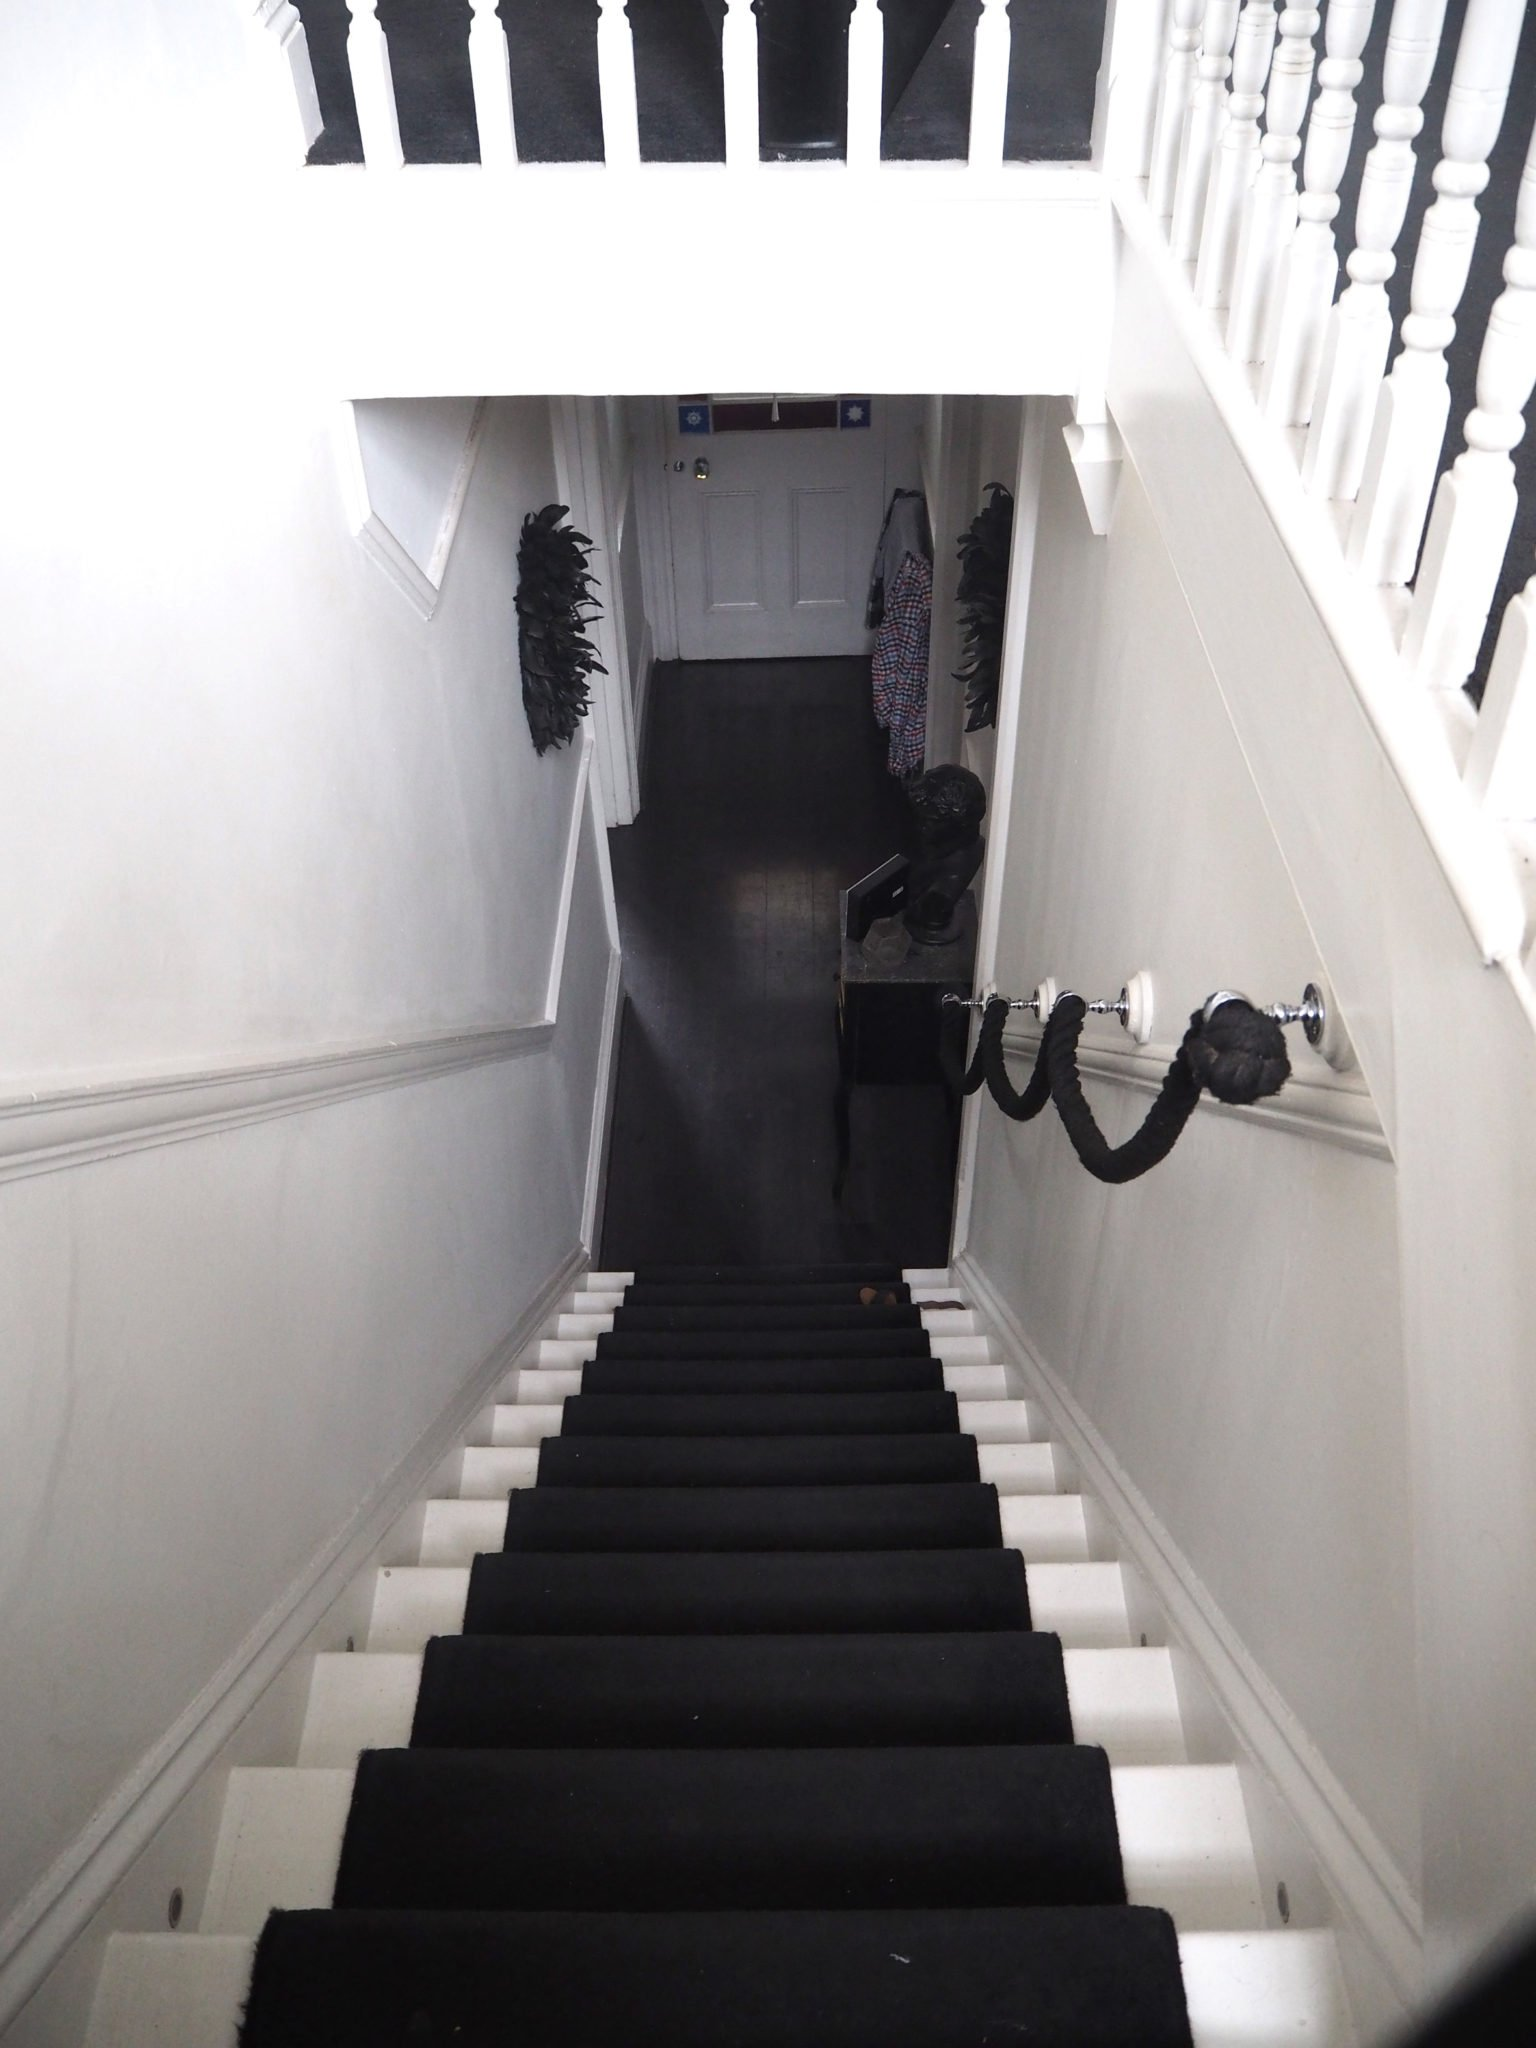 Looking Down The Stairs, it's crying out for my monochrome hallway design